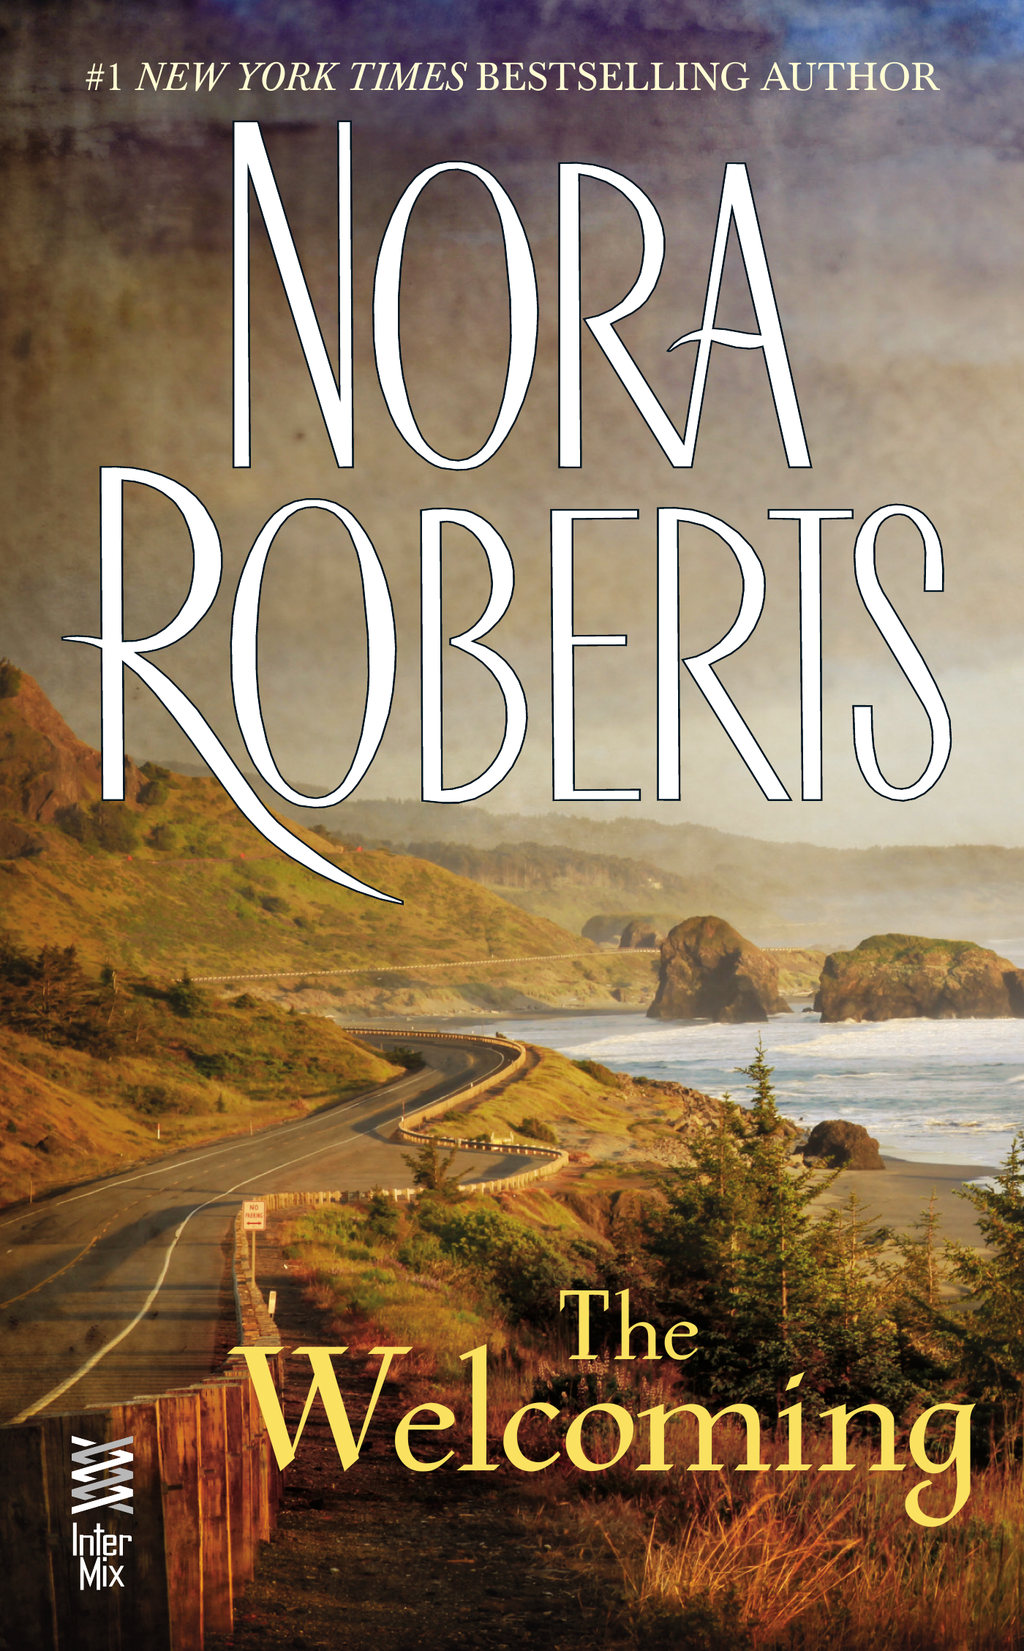 The Welcoming By: Nora Roberts